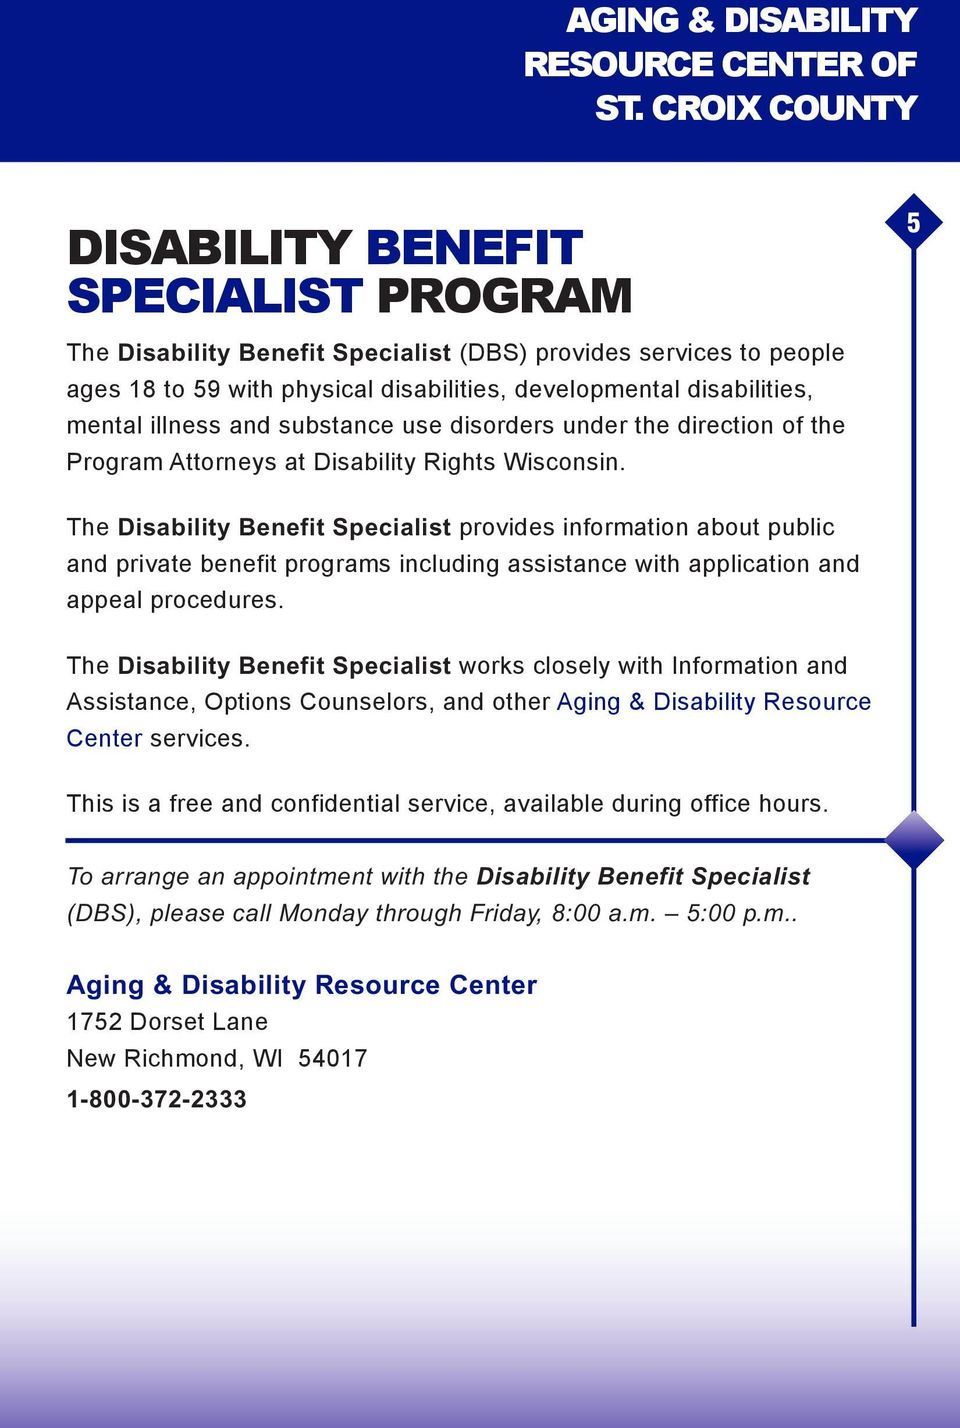 The Disability Benefit Specialist provides information about public and private benefit programs including assistance with application and appeal procedures.